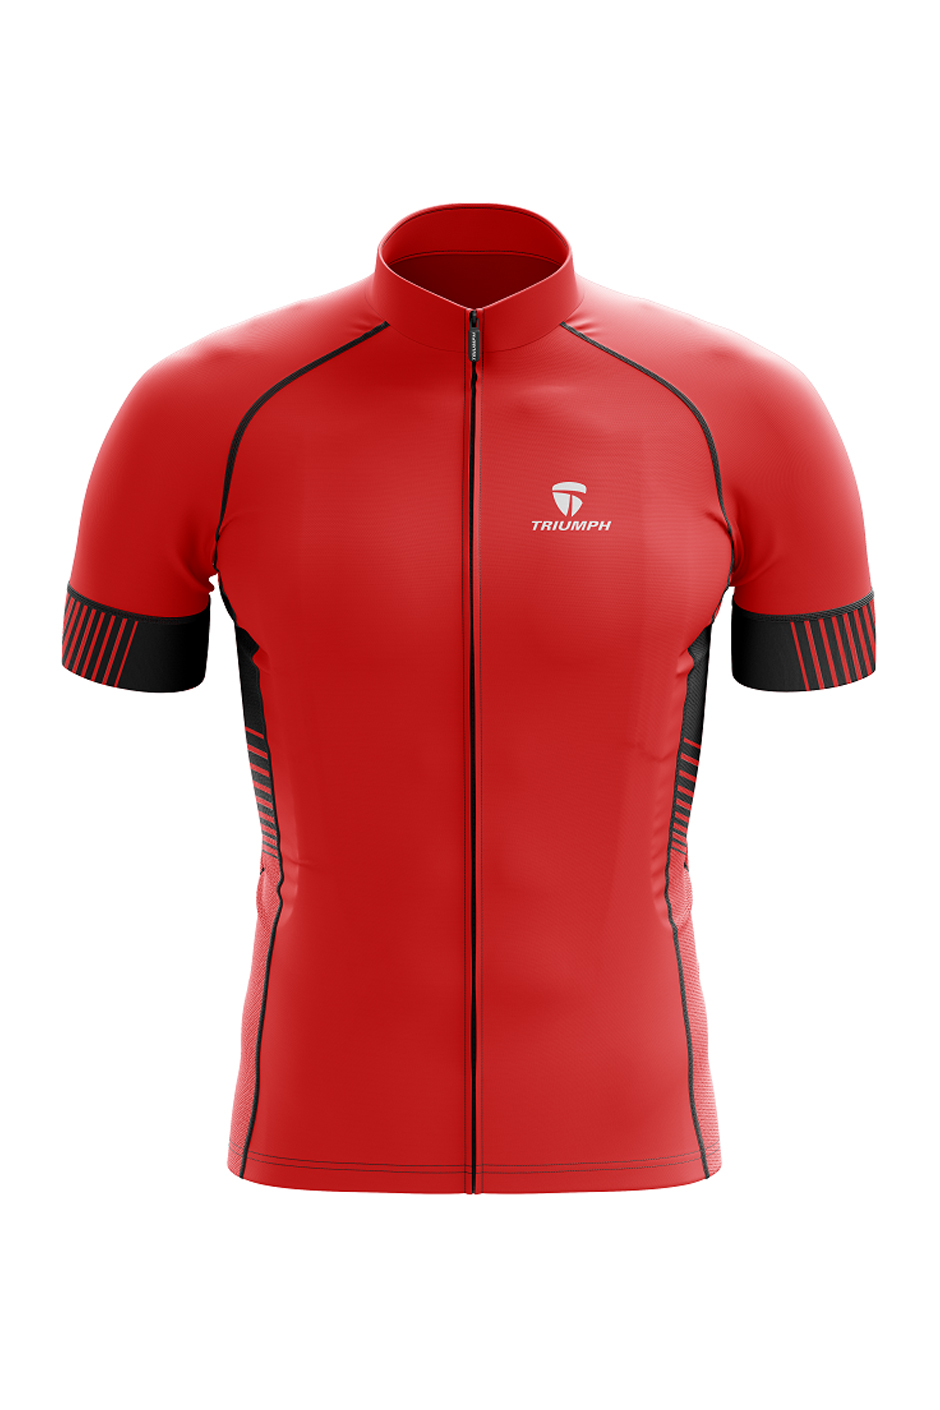 Mountain Bike Cycling Jersey  ae096e4b0